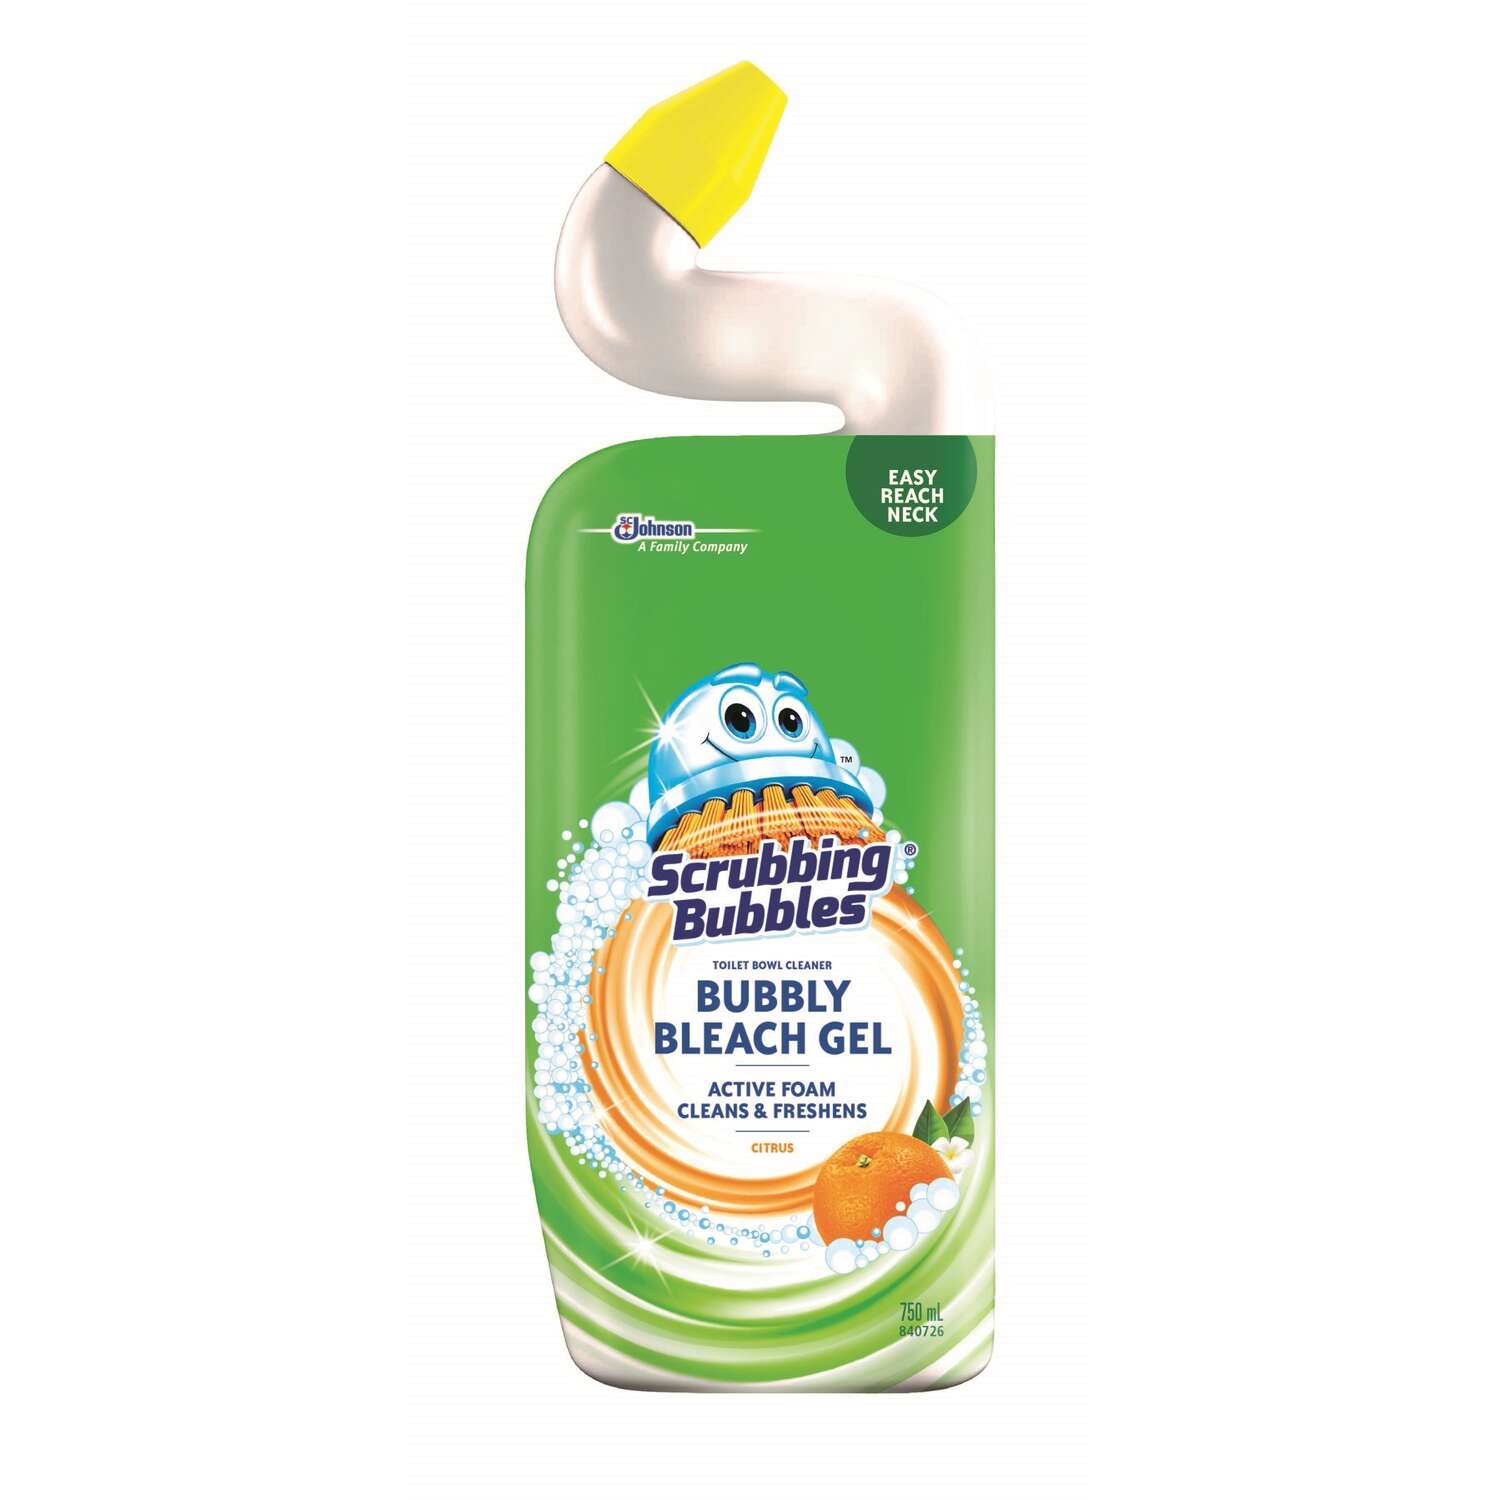 Scrubbing Bubbles  Bubbly Bleach Gel  Citrus Scent Toilet Bowl Cleaner  24 oz. Gel